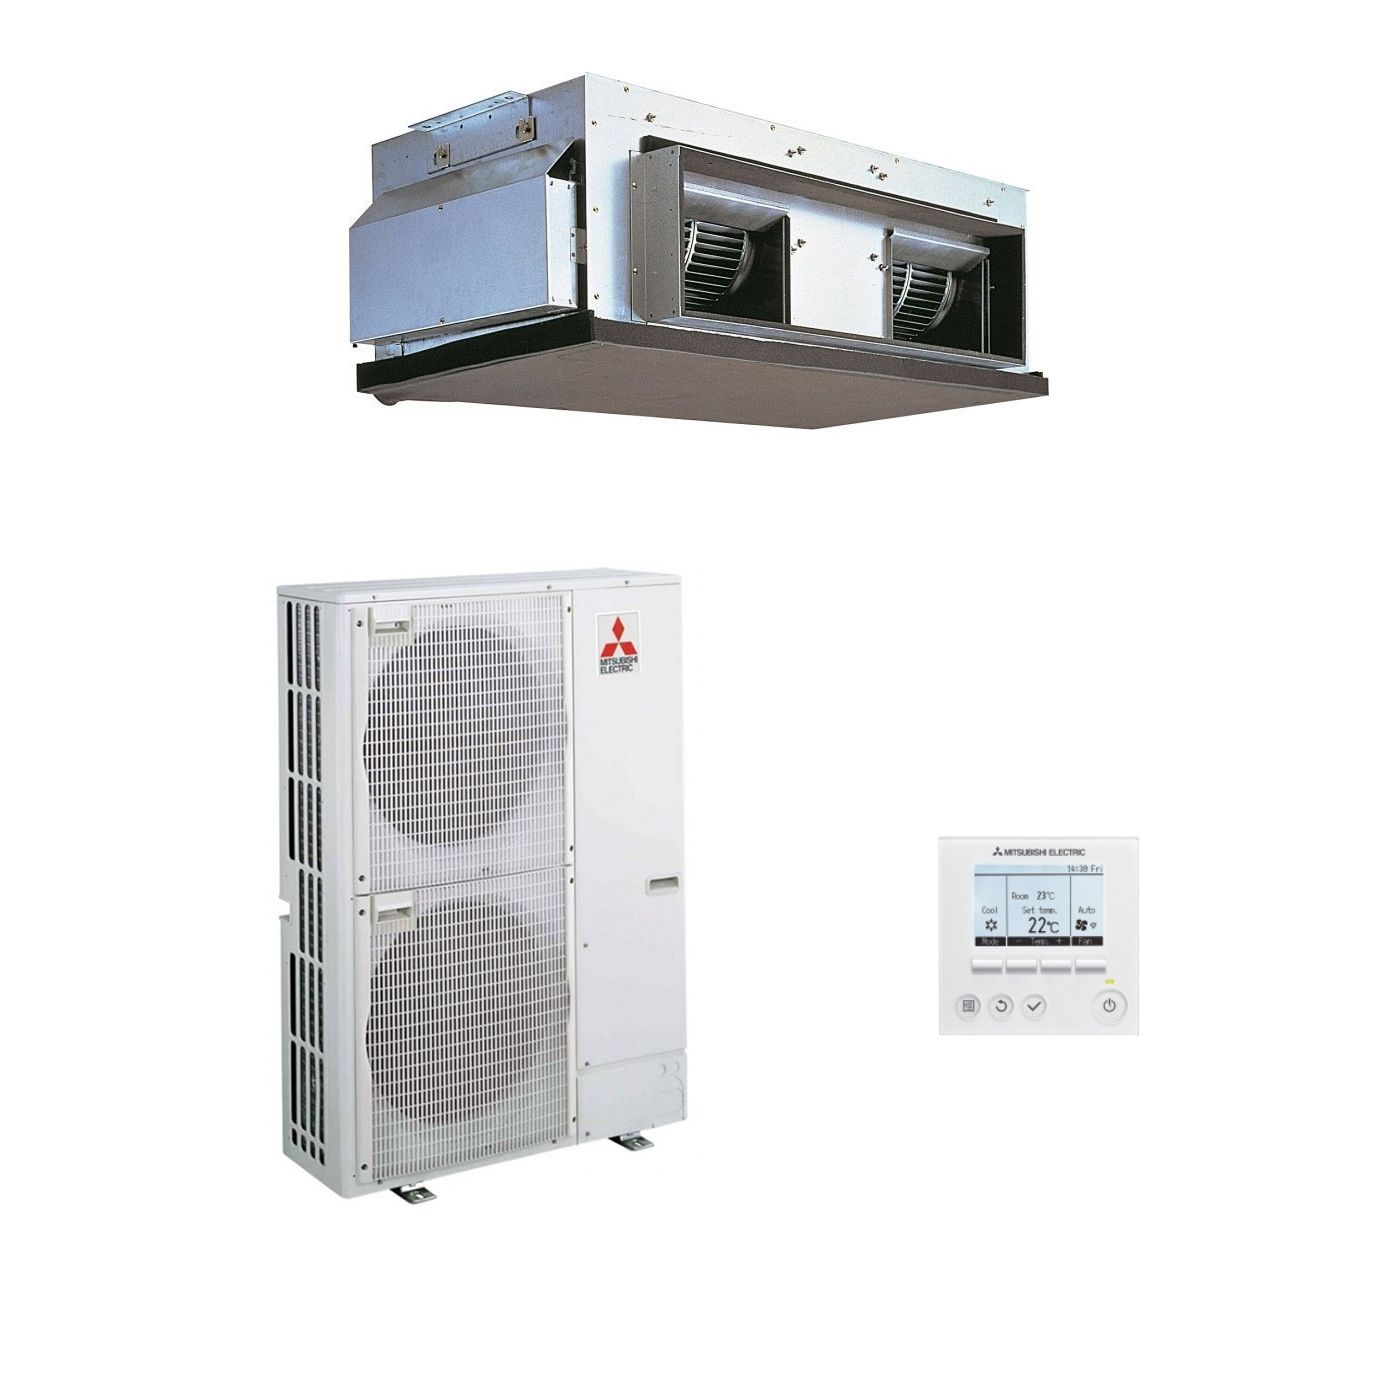 Mitsubishi Electric Air Conditioning Pea Rp250gaq Ducted